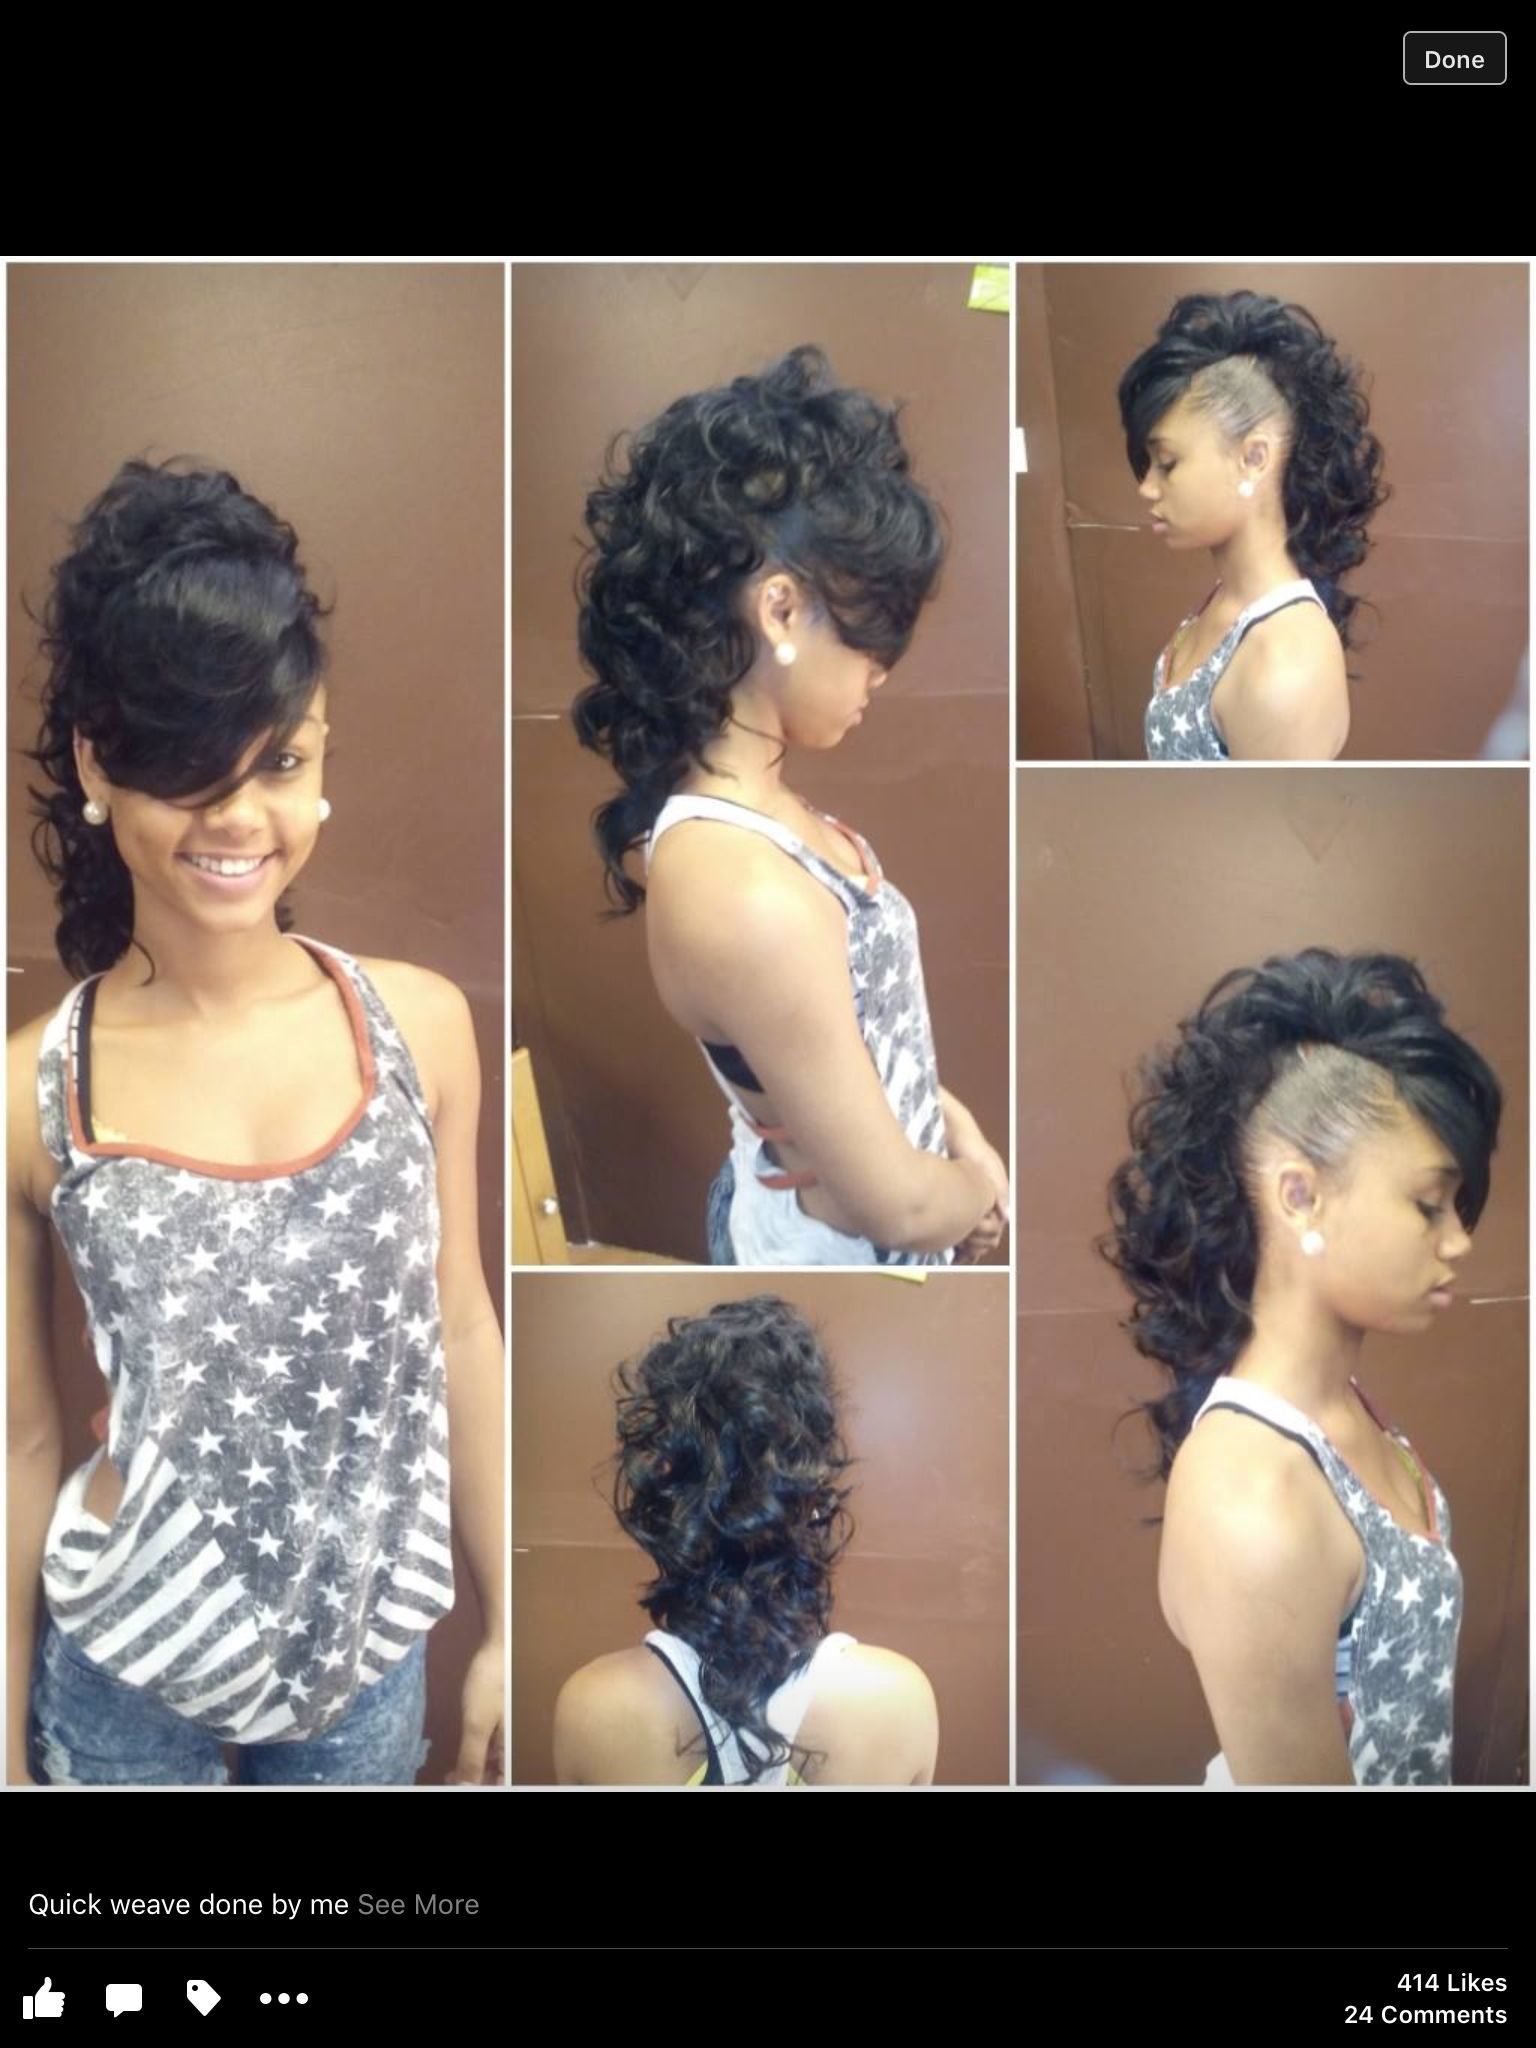 Best Of Curly Mohawk Quick Weave Hairstyle 2021 Quick Weave Hairstyles Braided Mohawk Hairstyles Curly Mohawk Hairstyles